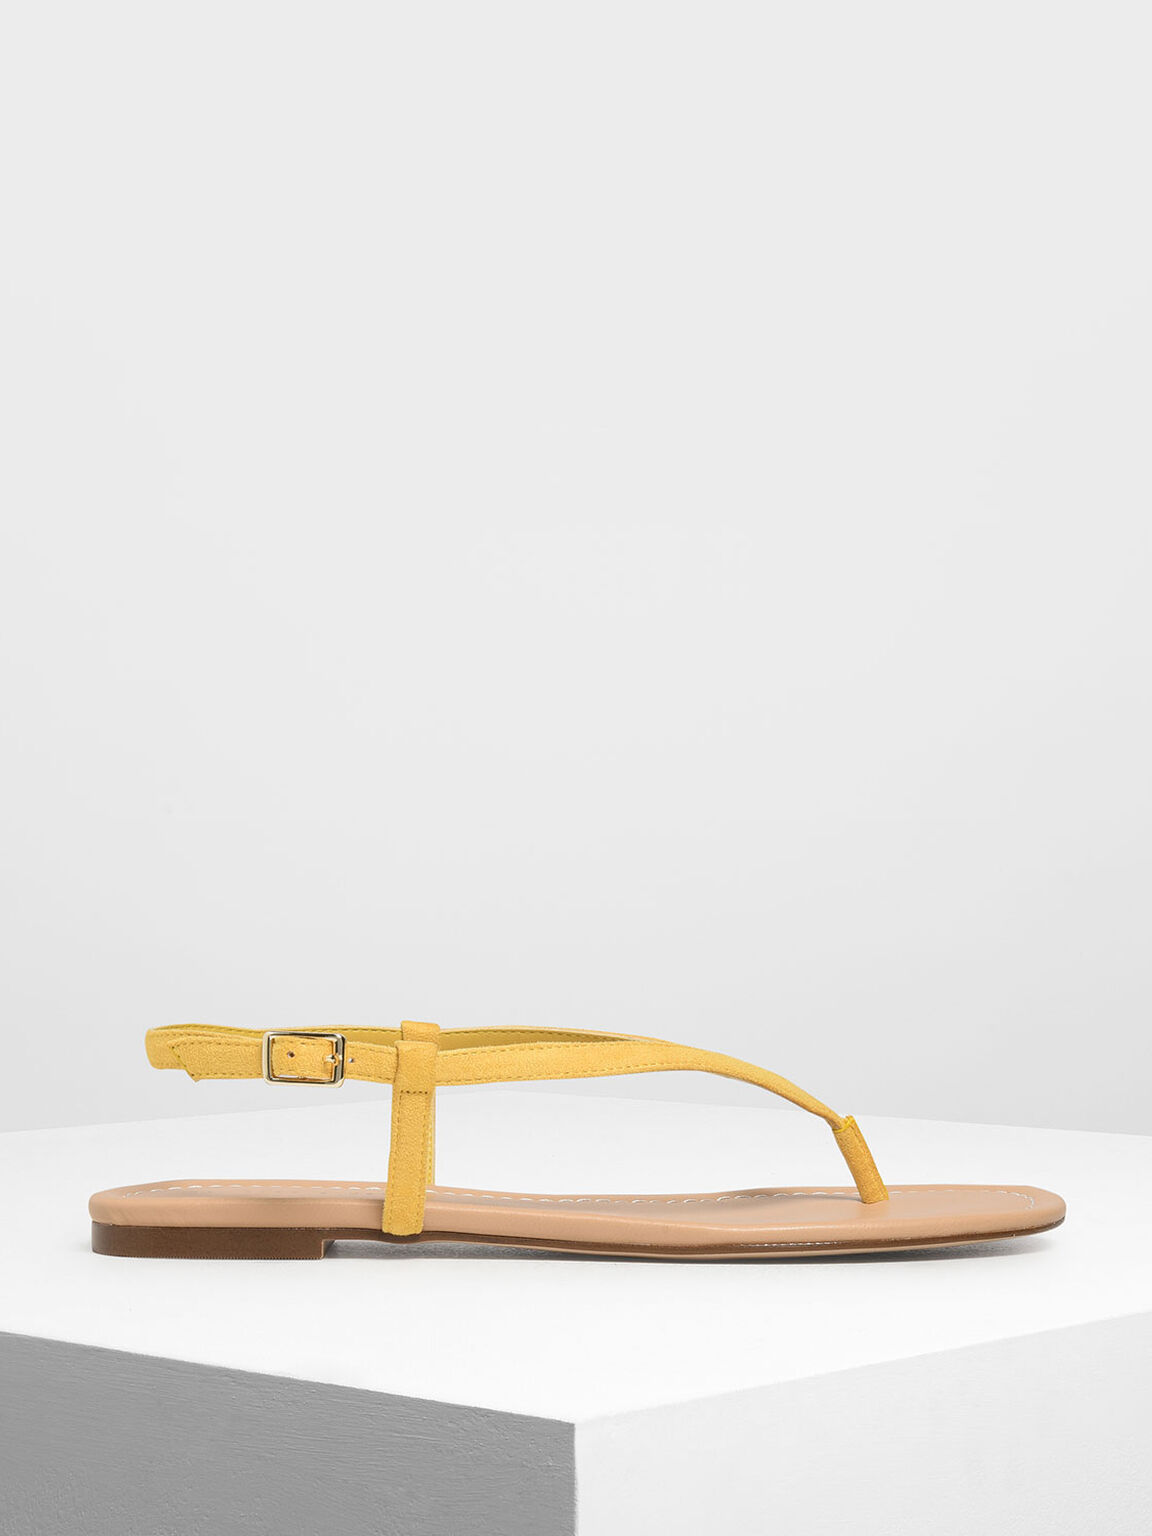 Classic Thong Sandals, Yellow, hi-res